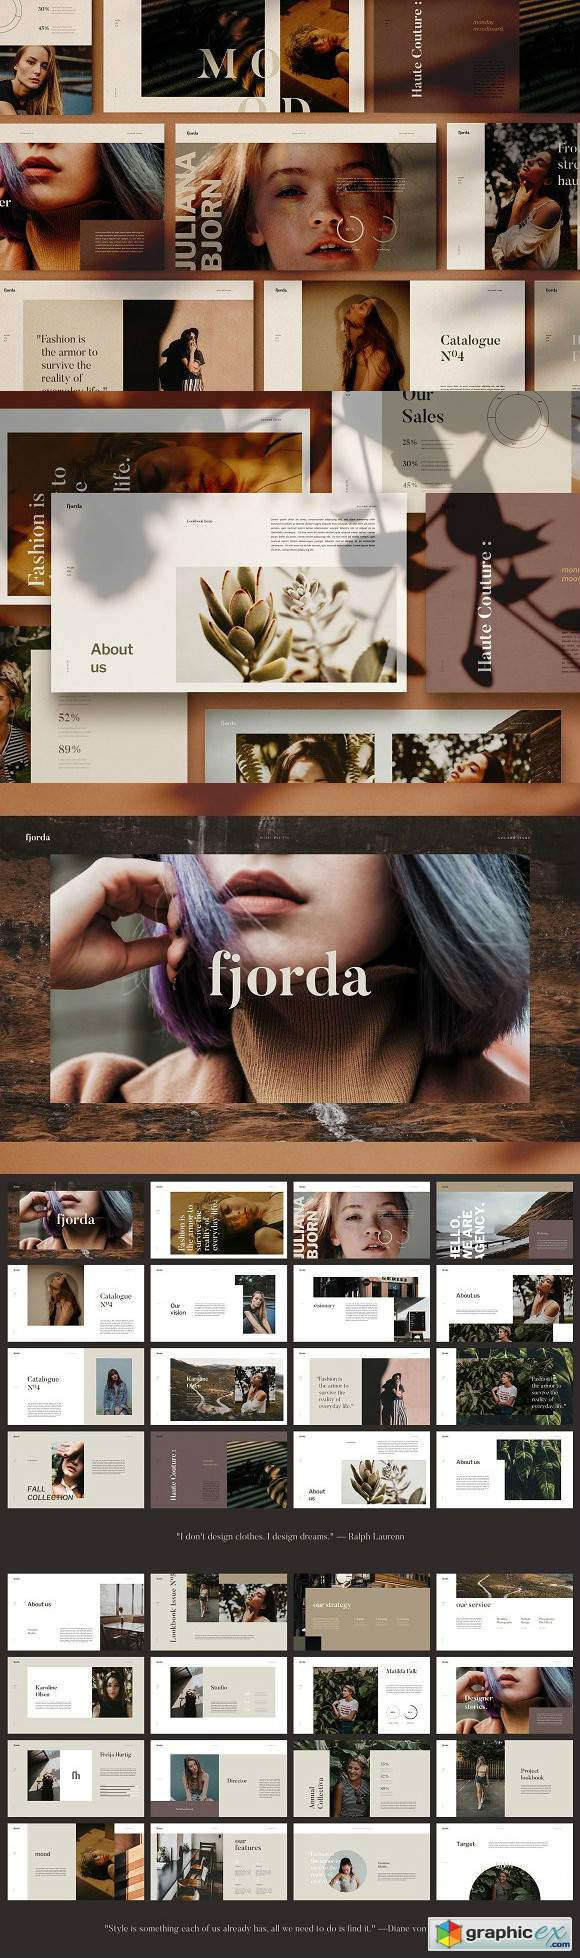 FJORDA - Powerpoint Template 2961016